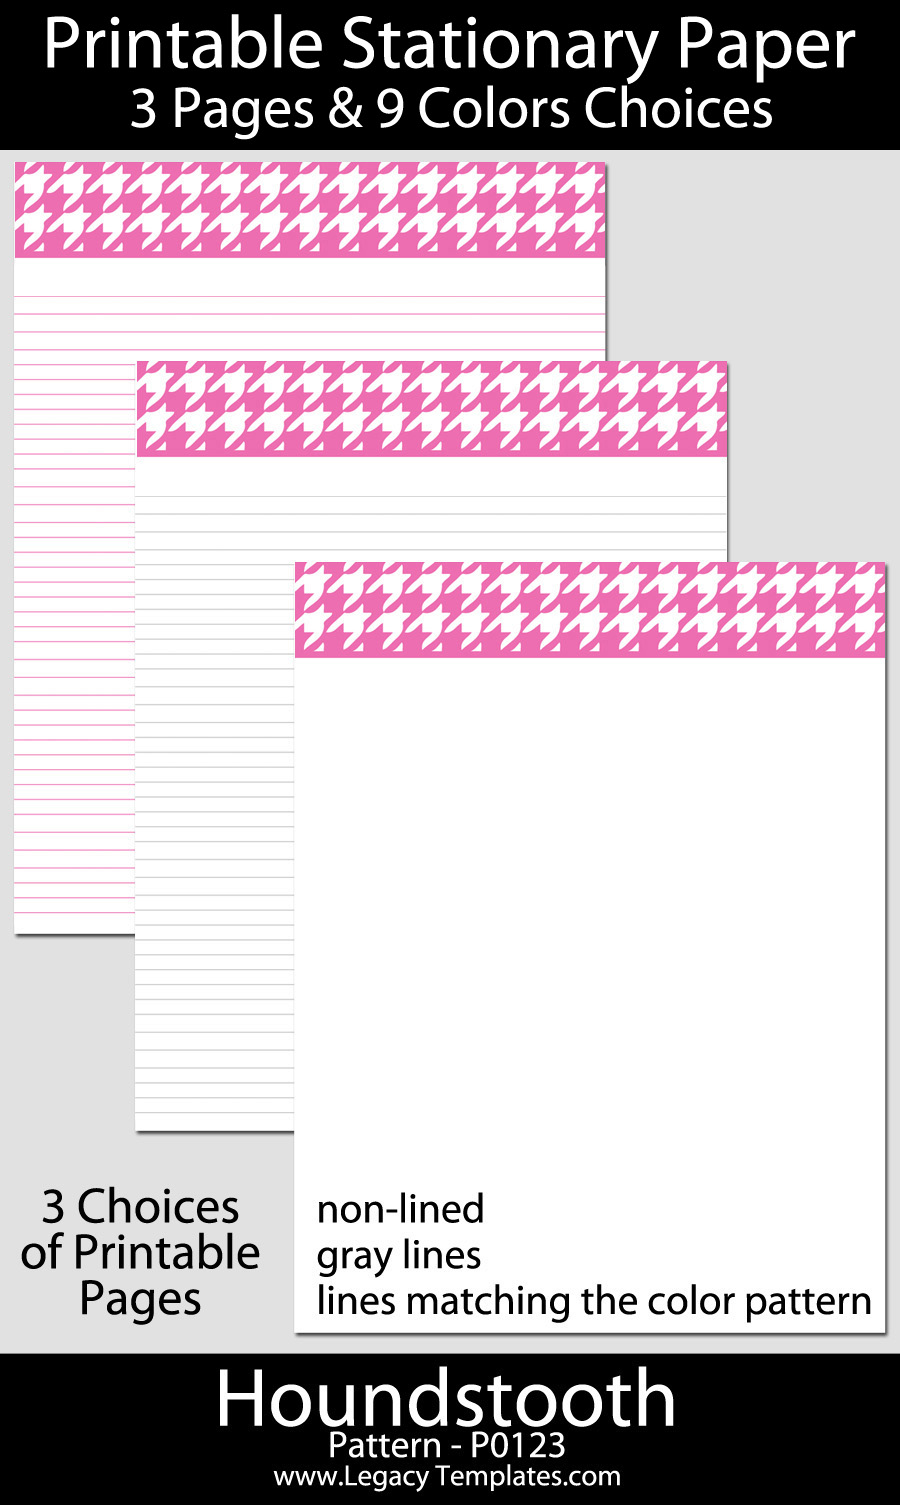 printable stationary paper with a houndstooth pattern